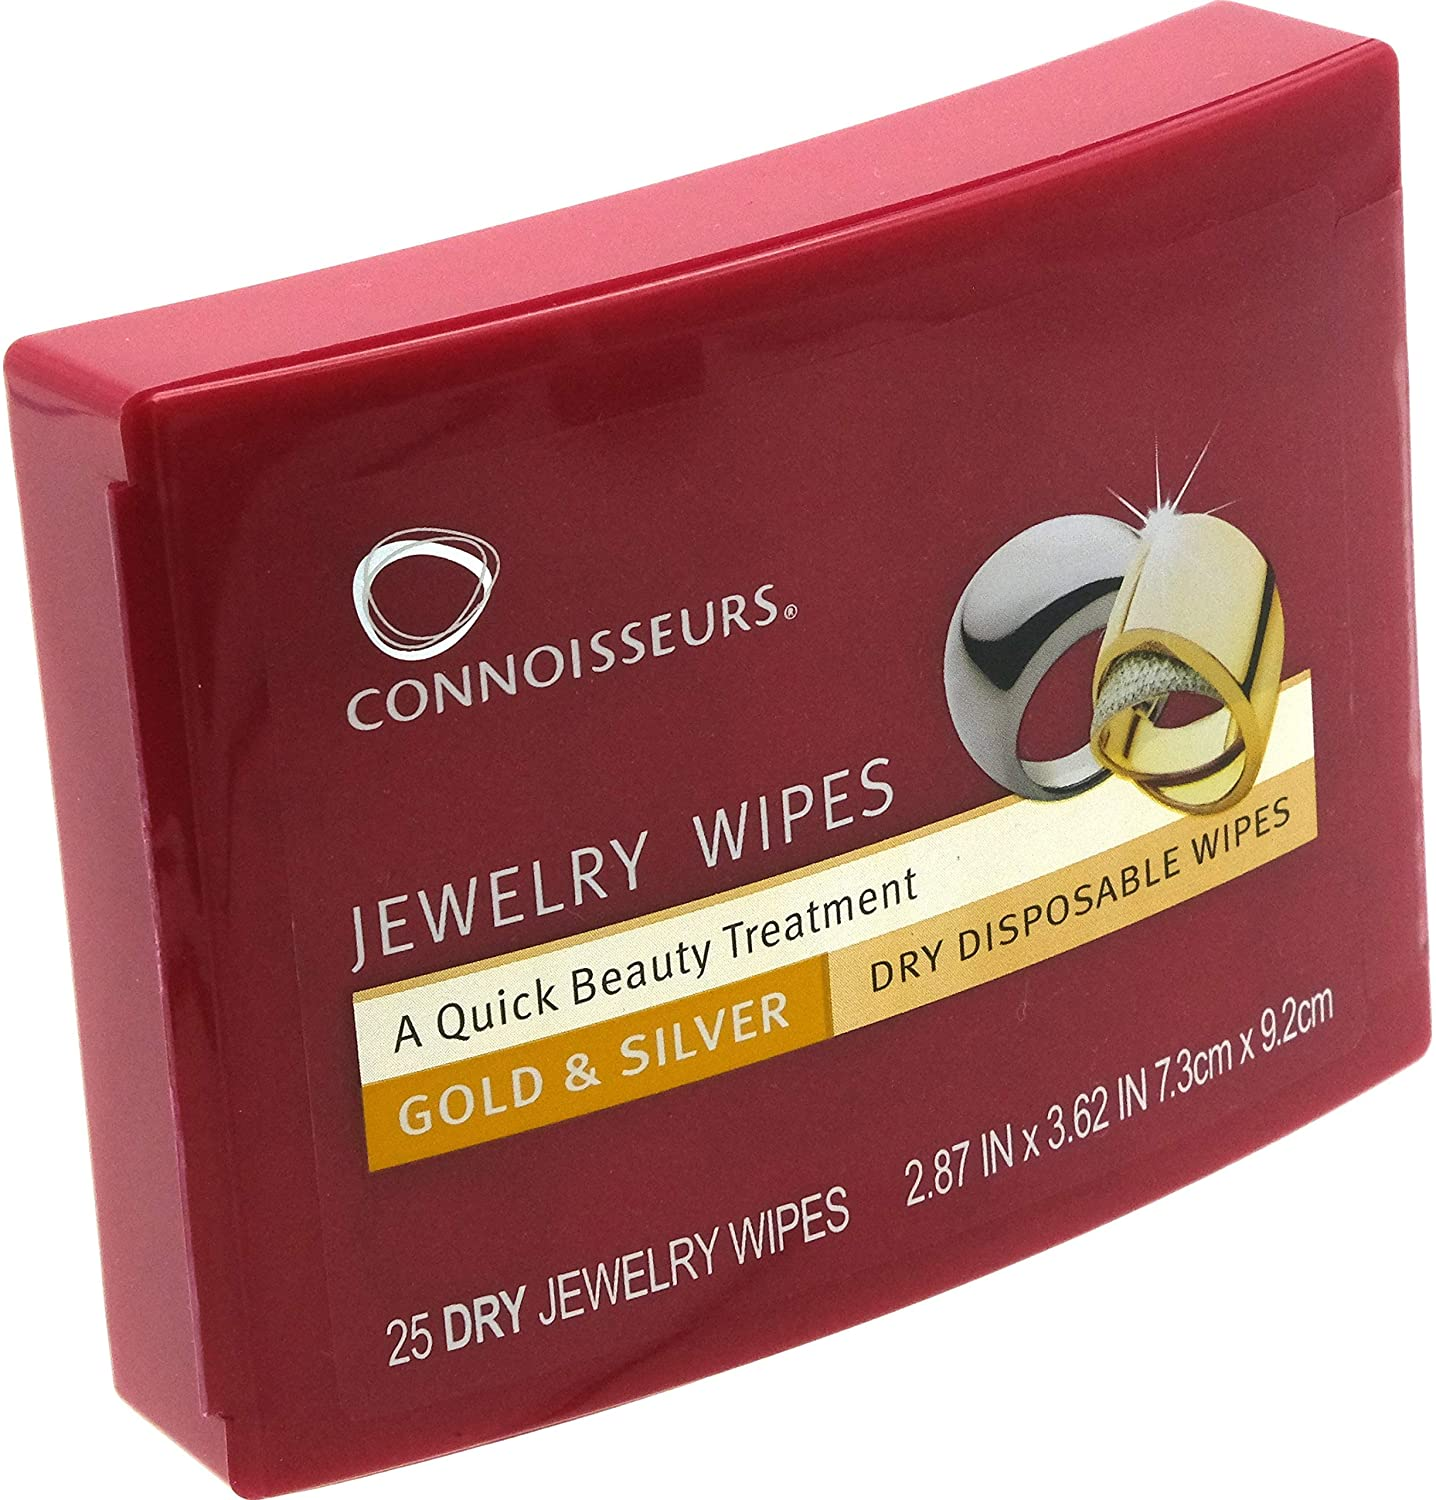 Connoisseurs Jewelry Wipes Box Colorado Springs Washington Mall Mall 25 of